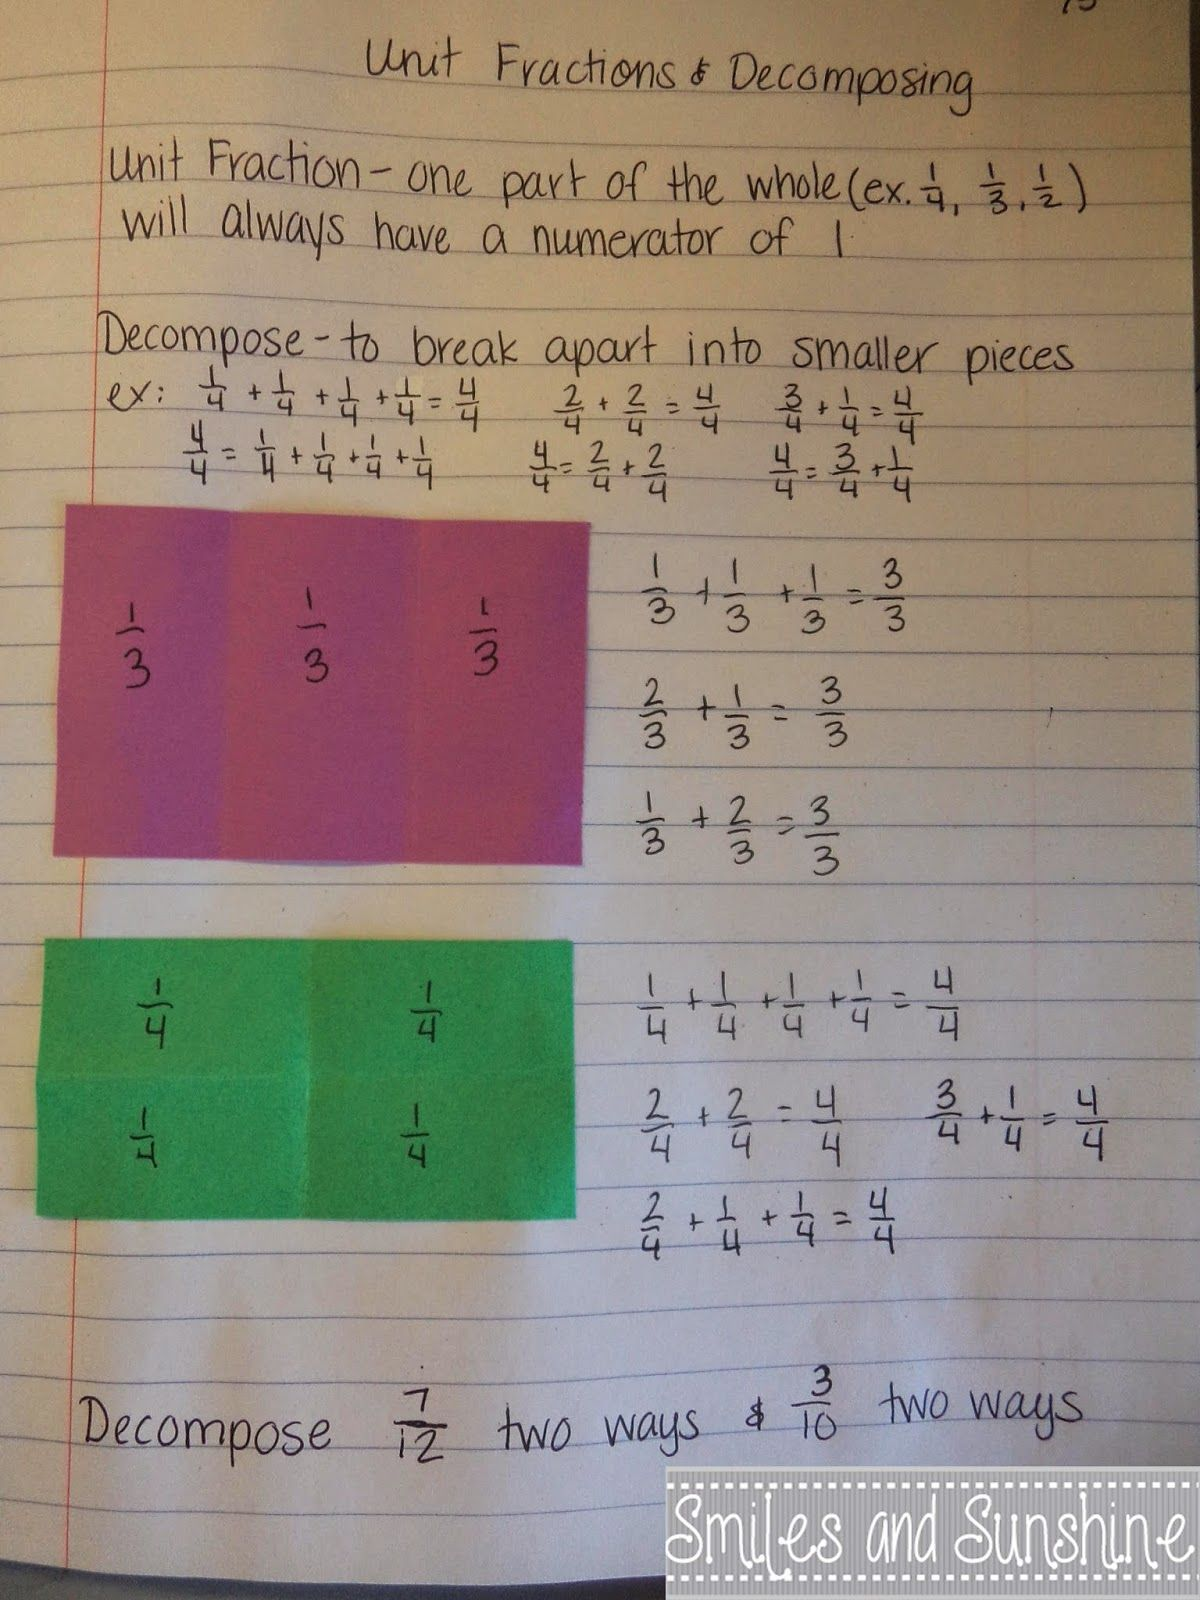 More Fraction Fun Unit Fractions And Decomposing